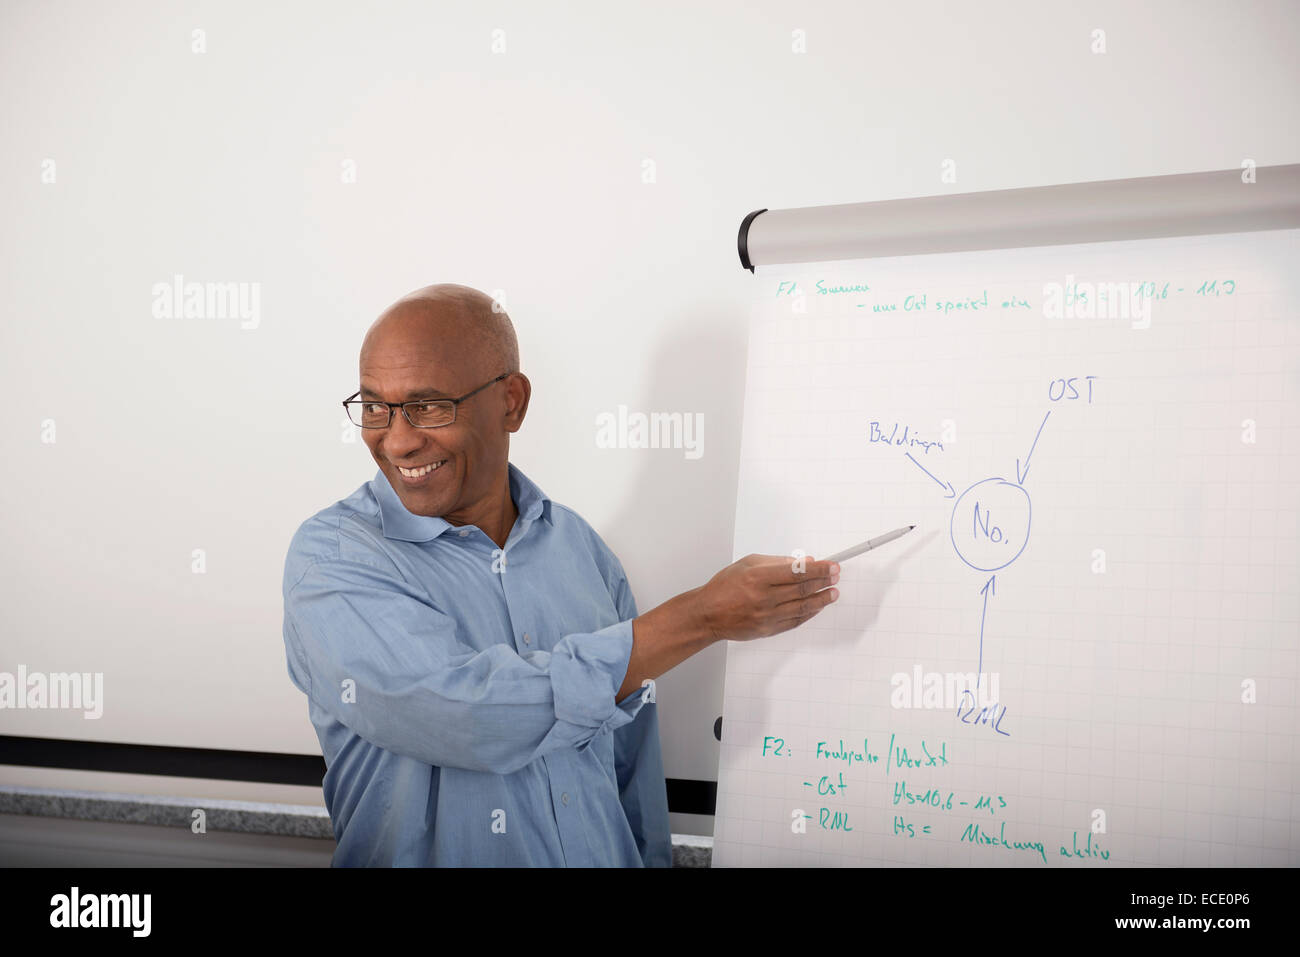 Presentation flipchart Afrikaner office working - Stock Image